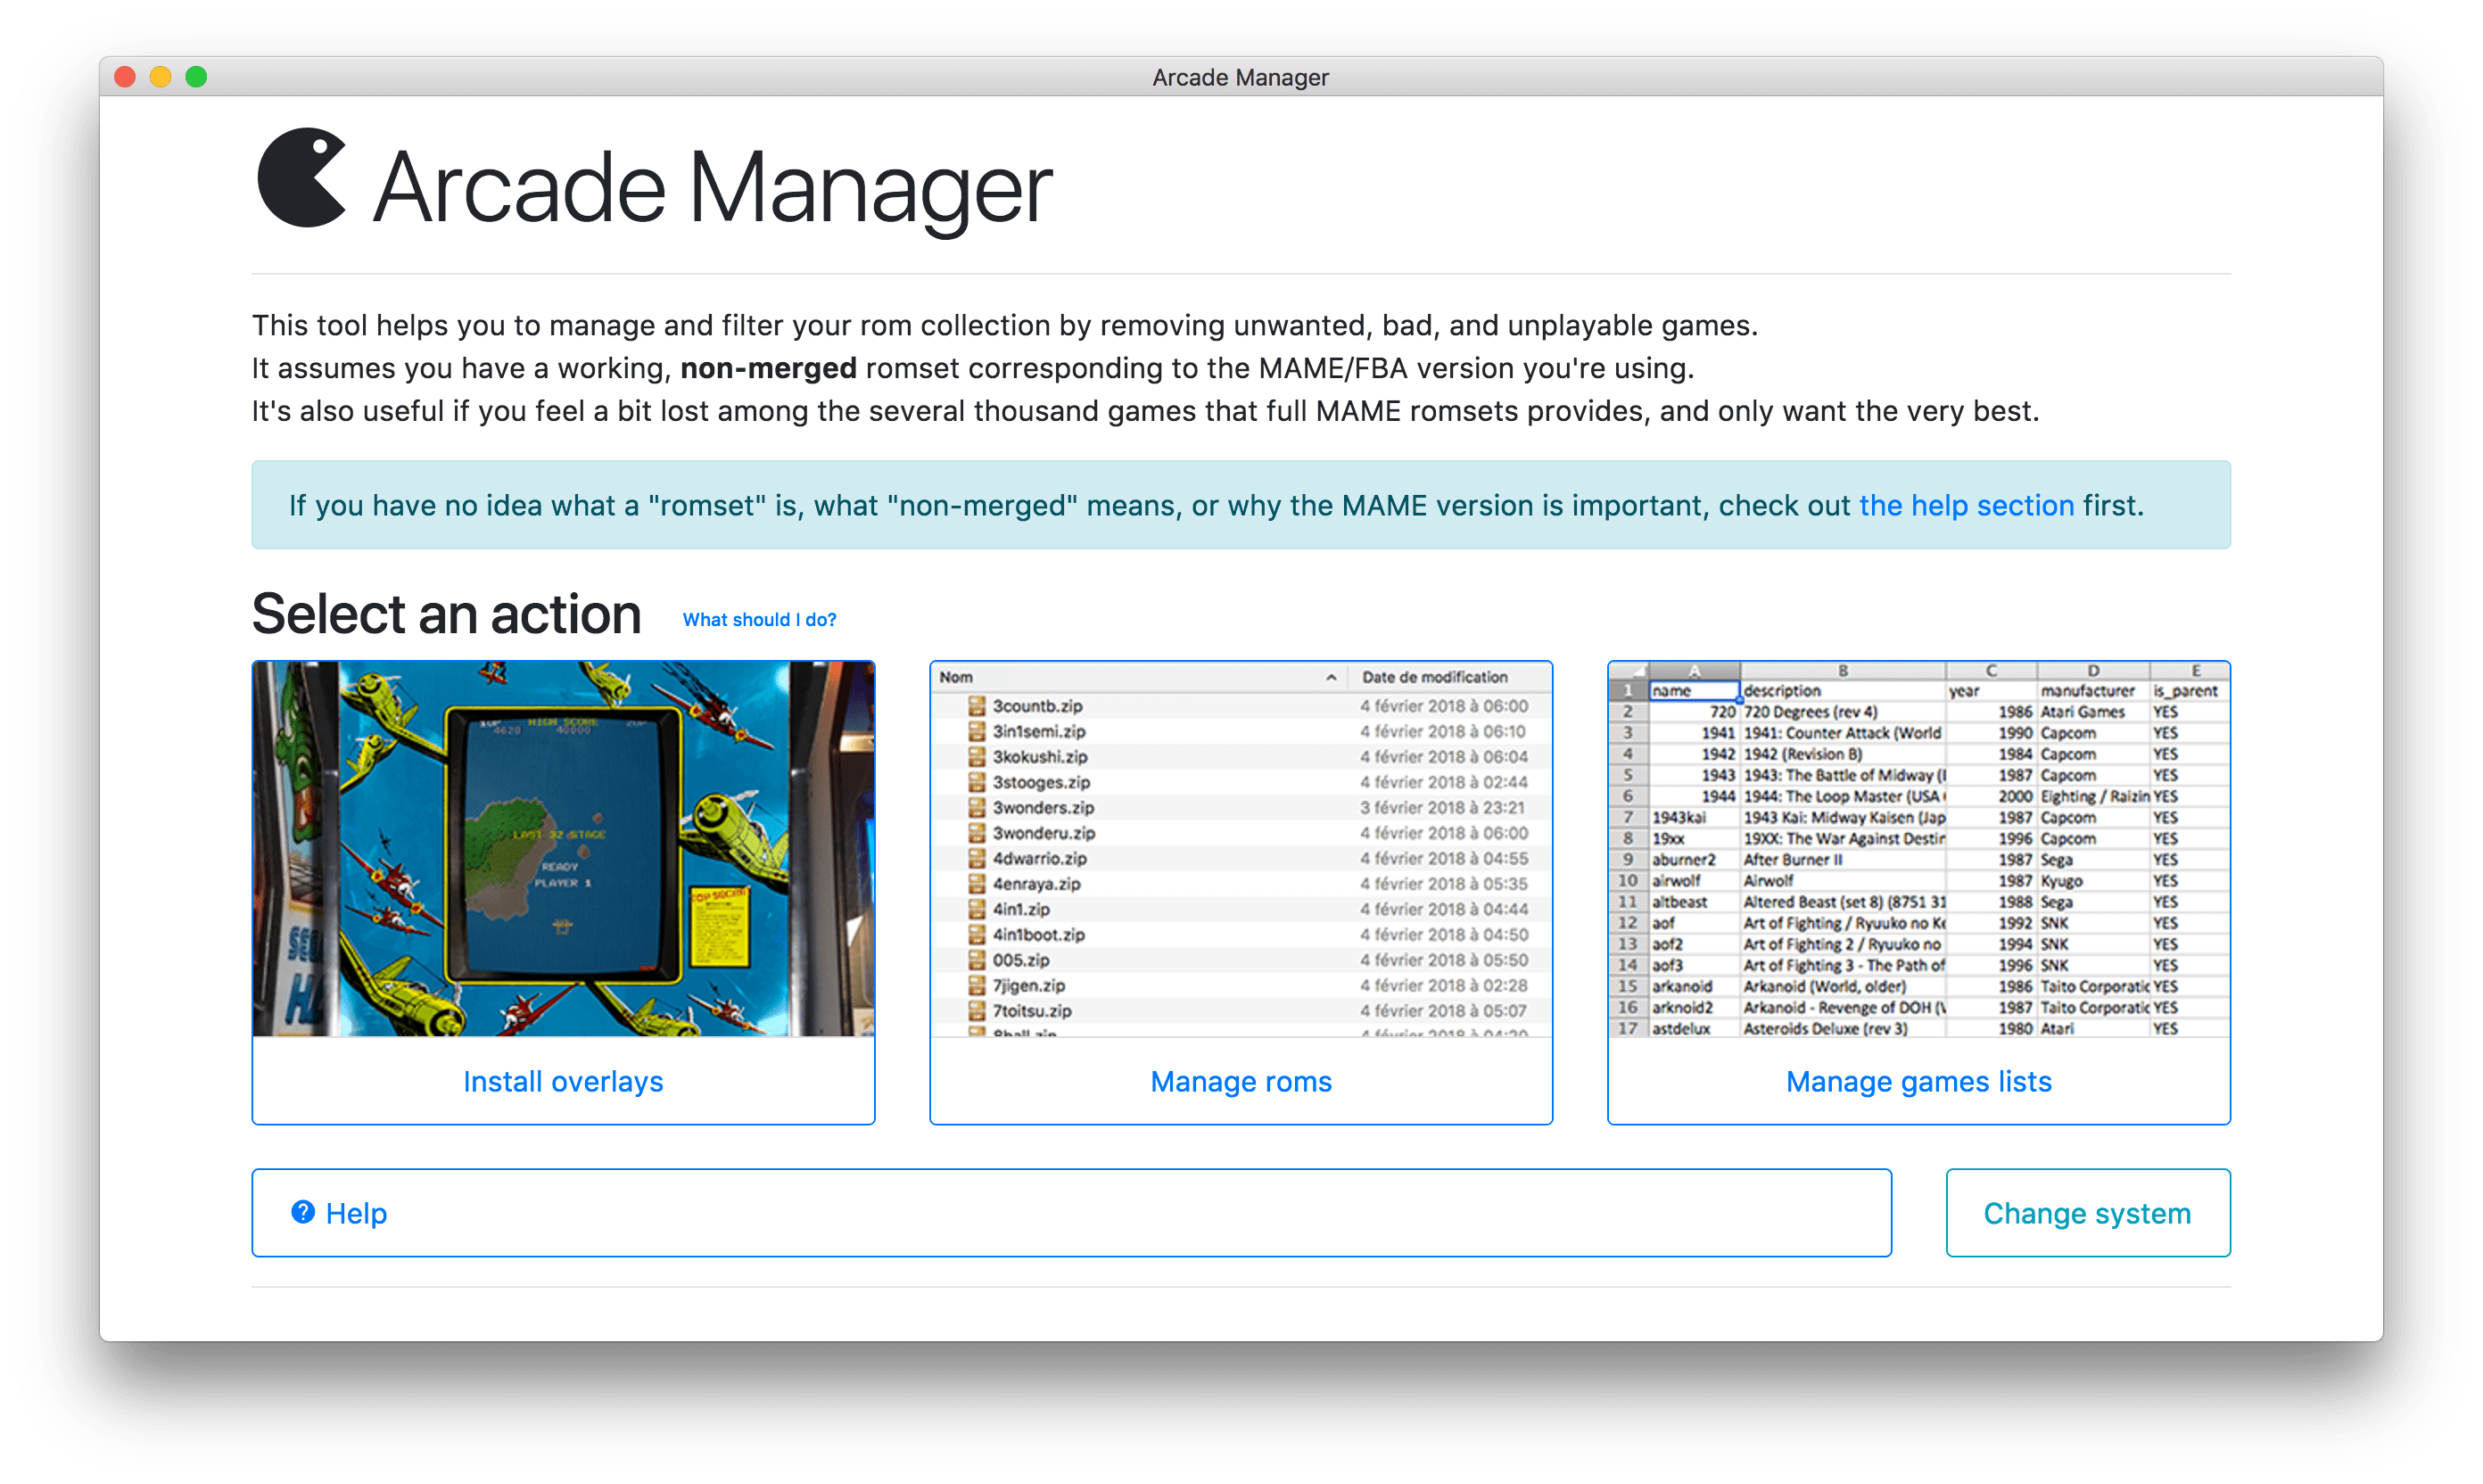 Arcade Manager: install overlays and manage roms in a user-friendly